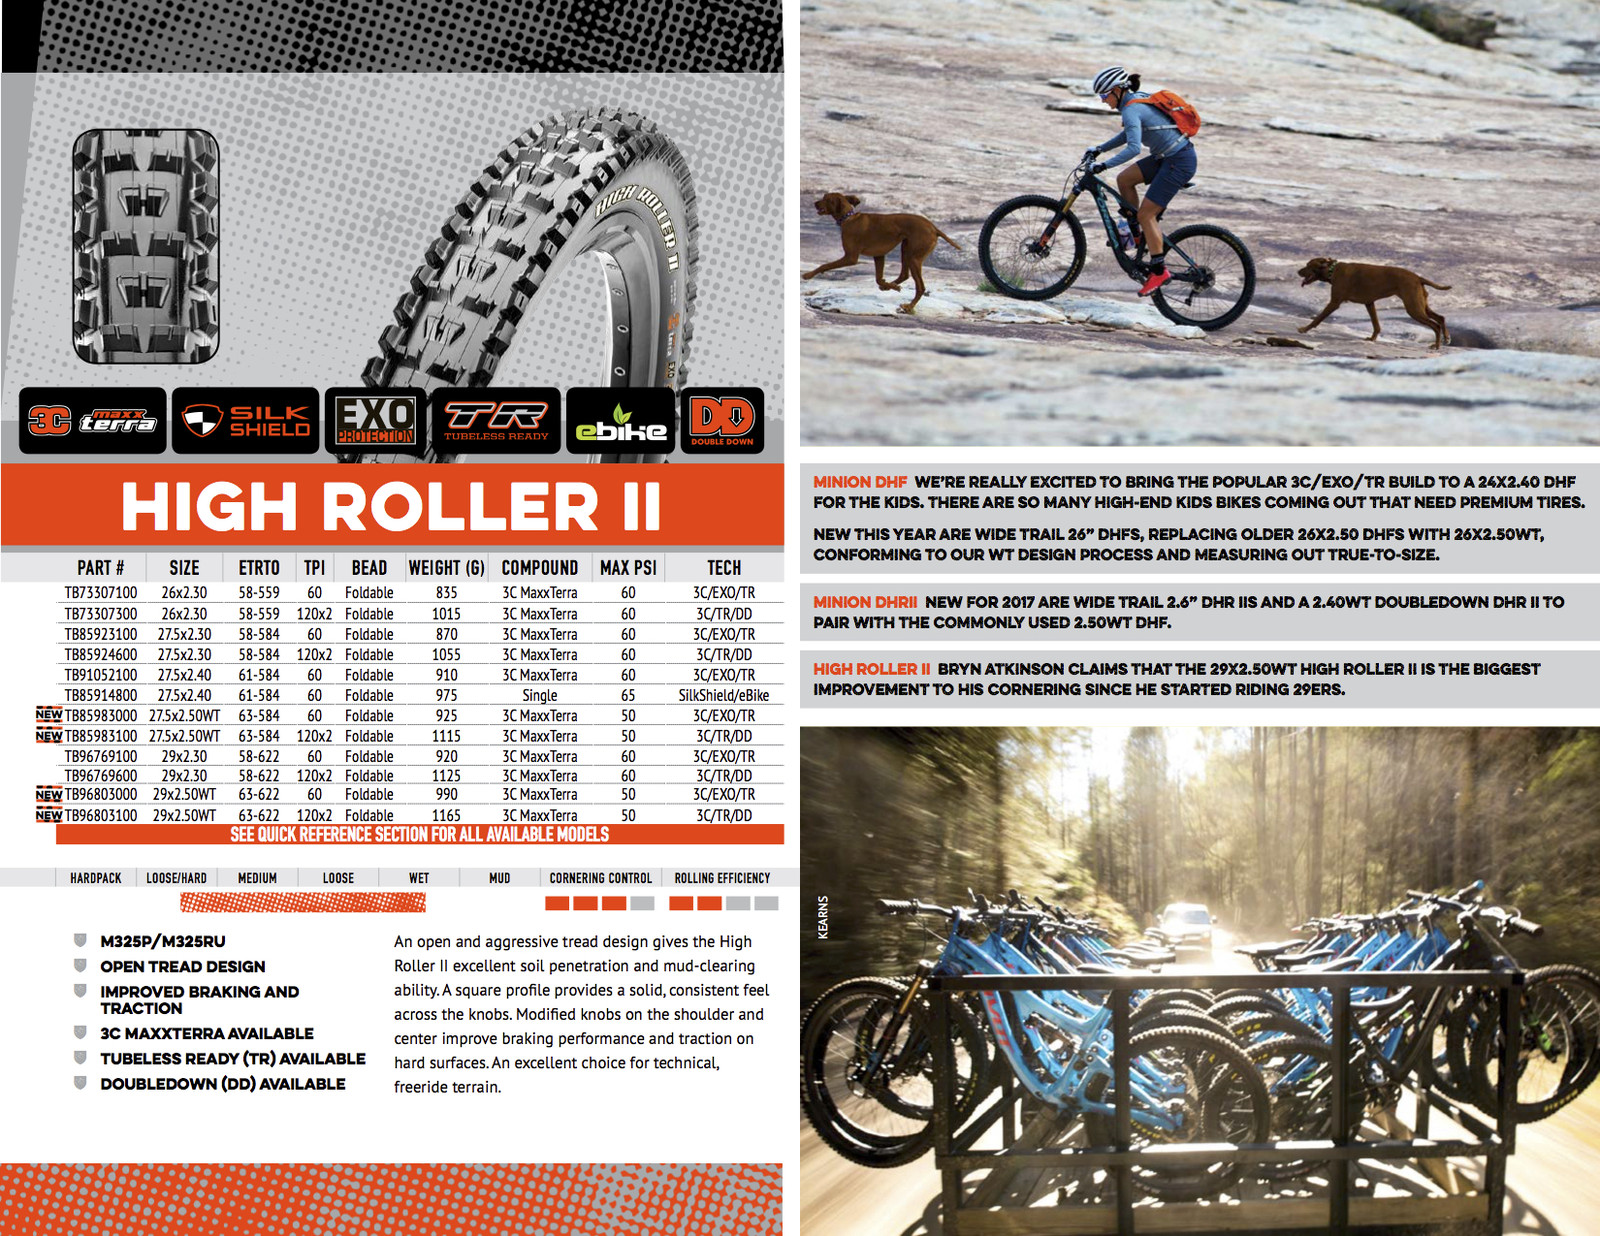 85fc7da43d4 The Complete Guide to Maxxis Mountain Bike Tires - Mountain Bikes ...